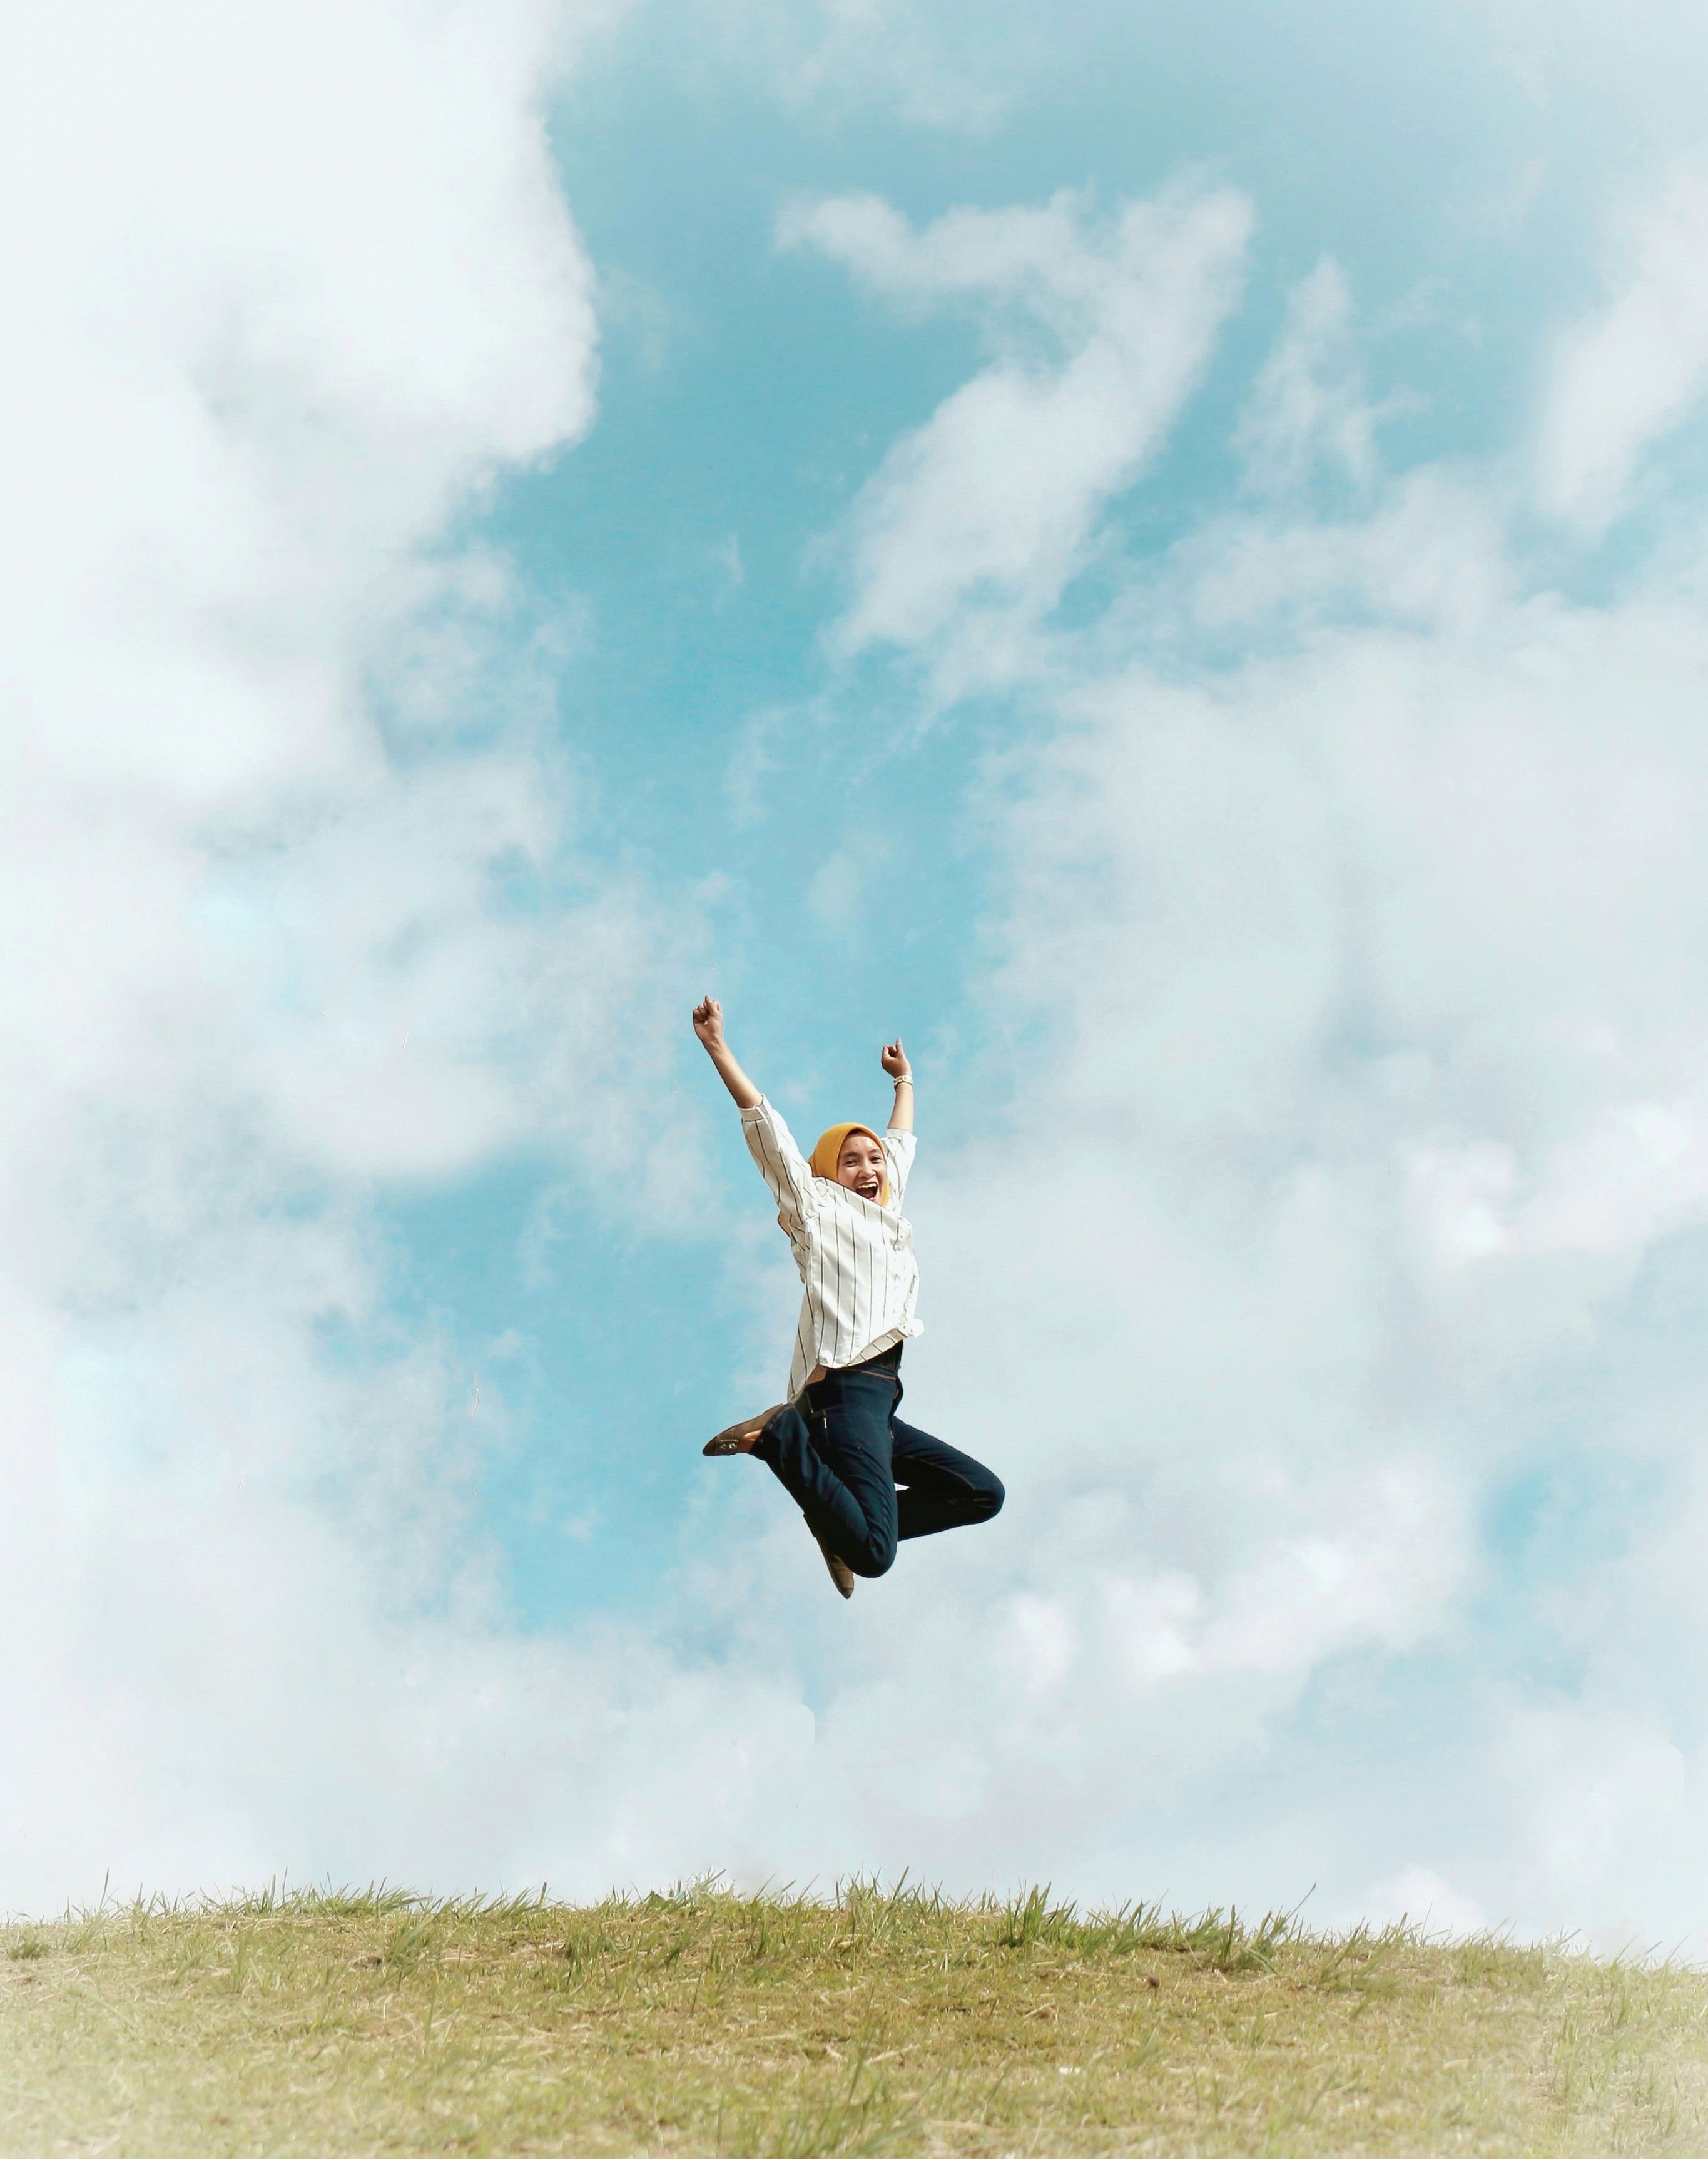 Person Jumping On Air With Clouds Background